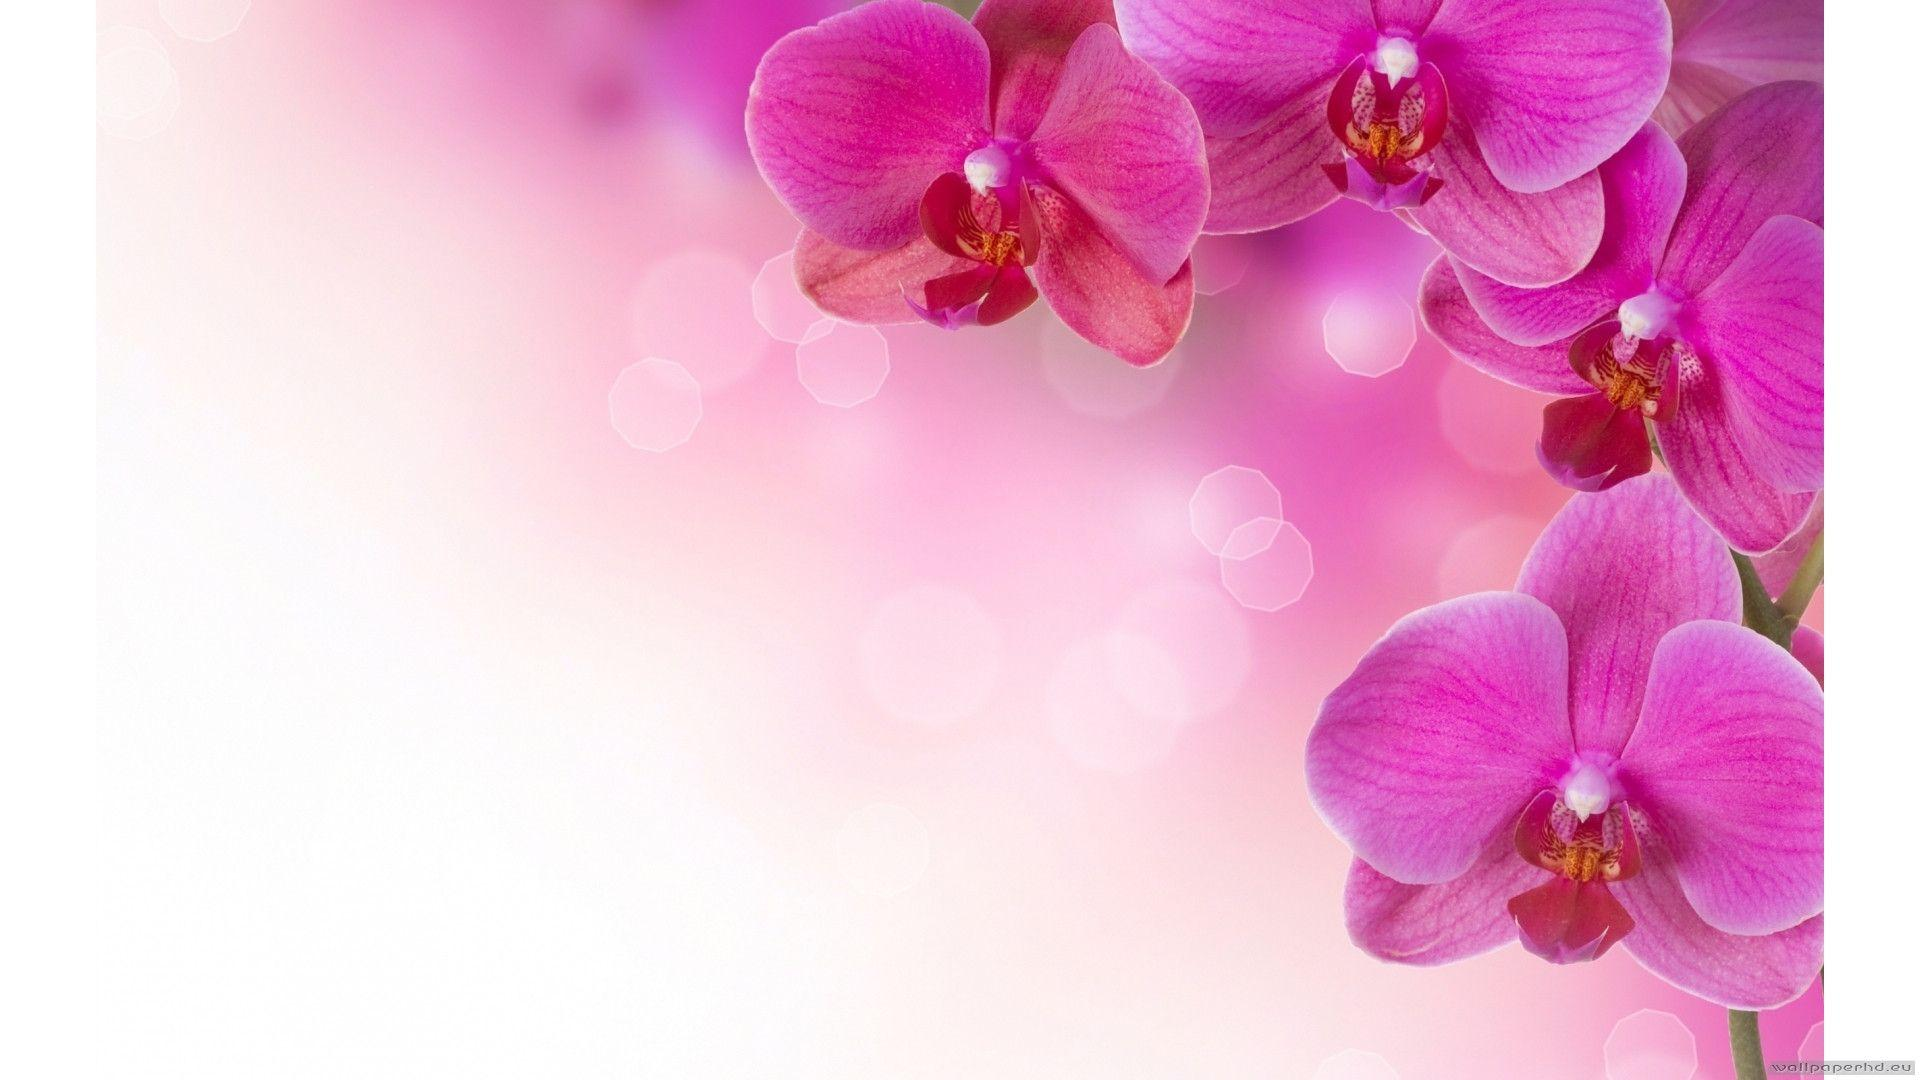 orchid wallpapers backgrounds images - photo #16